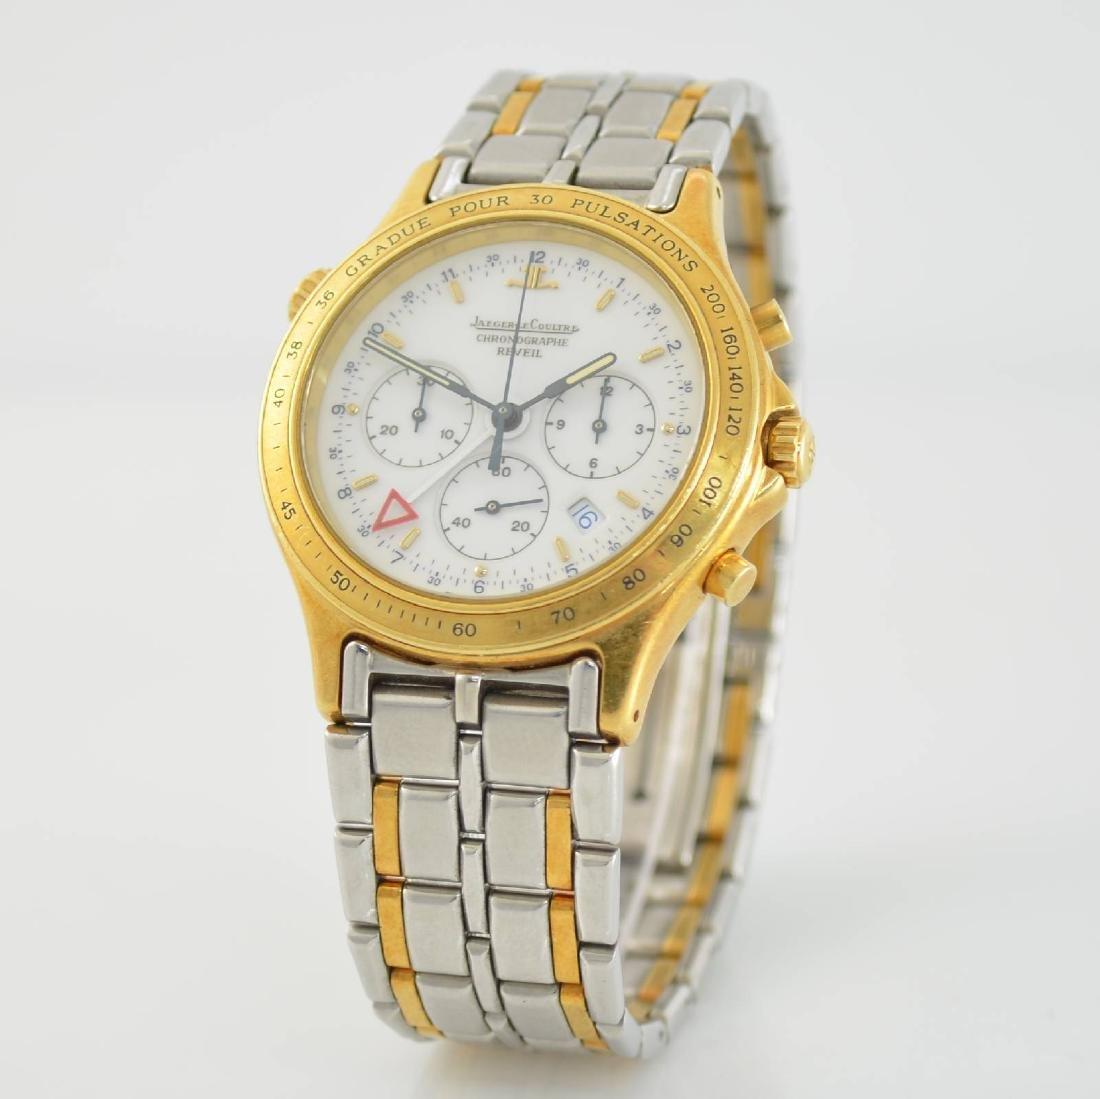 Jaeger-LeCoultre alarm wristwatch with chronograph - 3